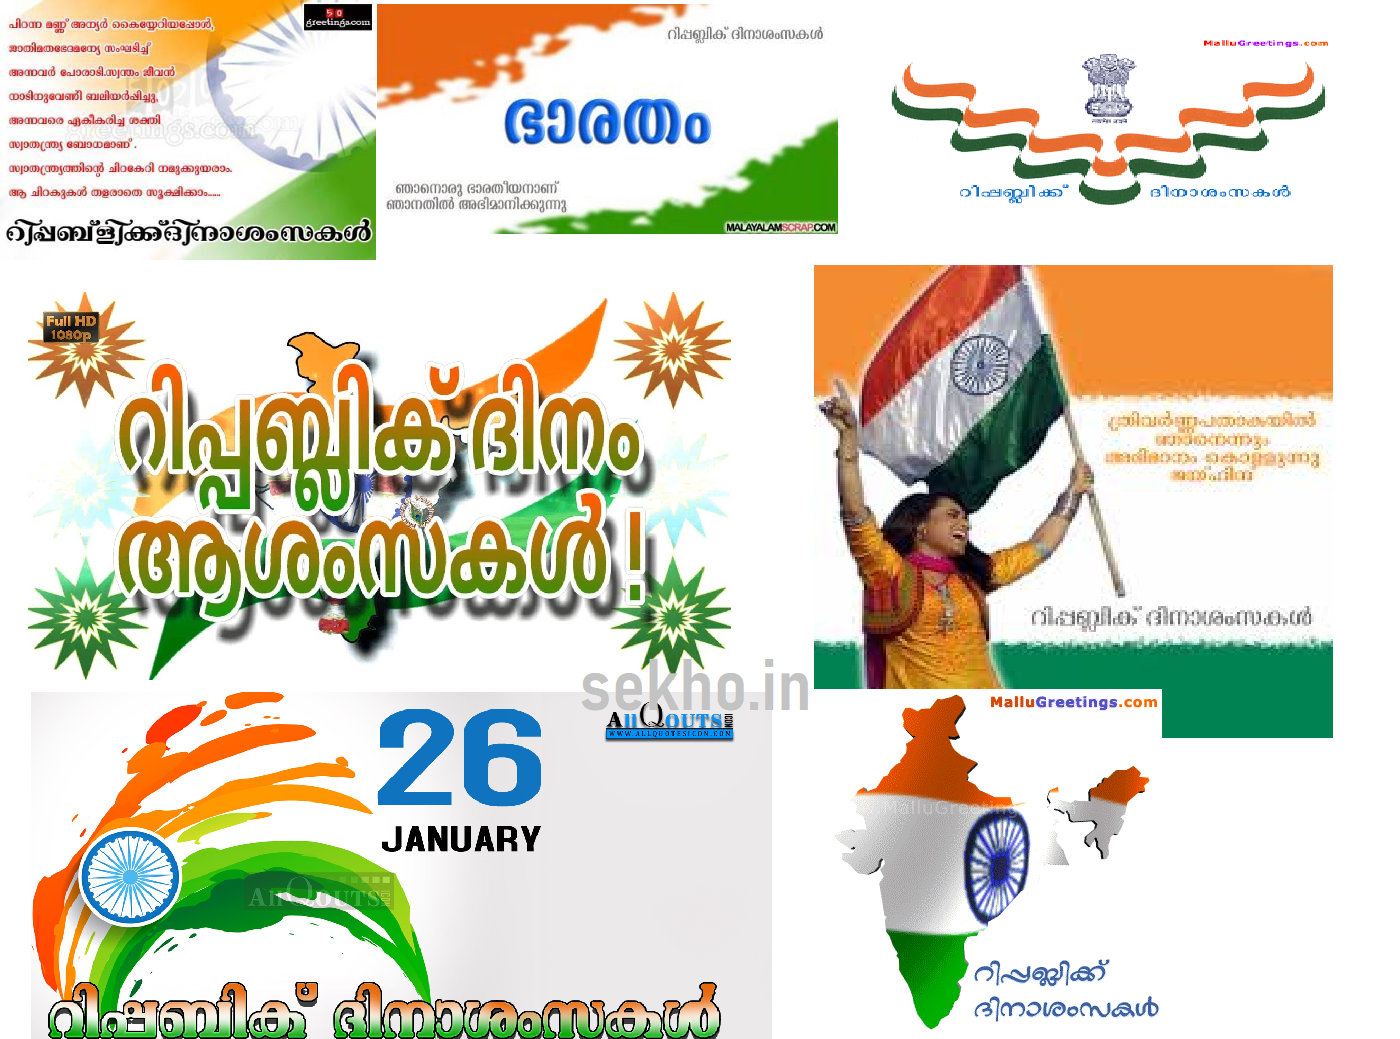 Republic Day Quotes In Hindi 2019 Tamil Marathi Kannada Malayalam